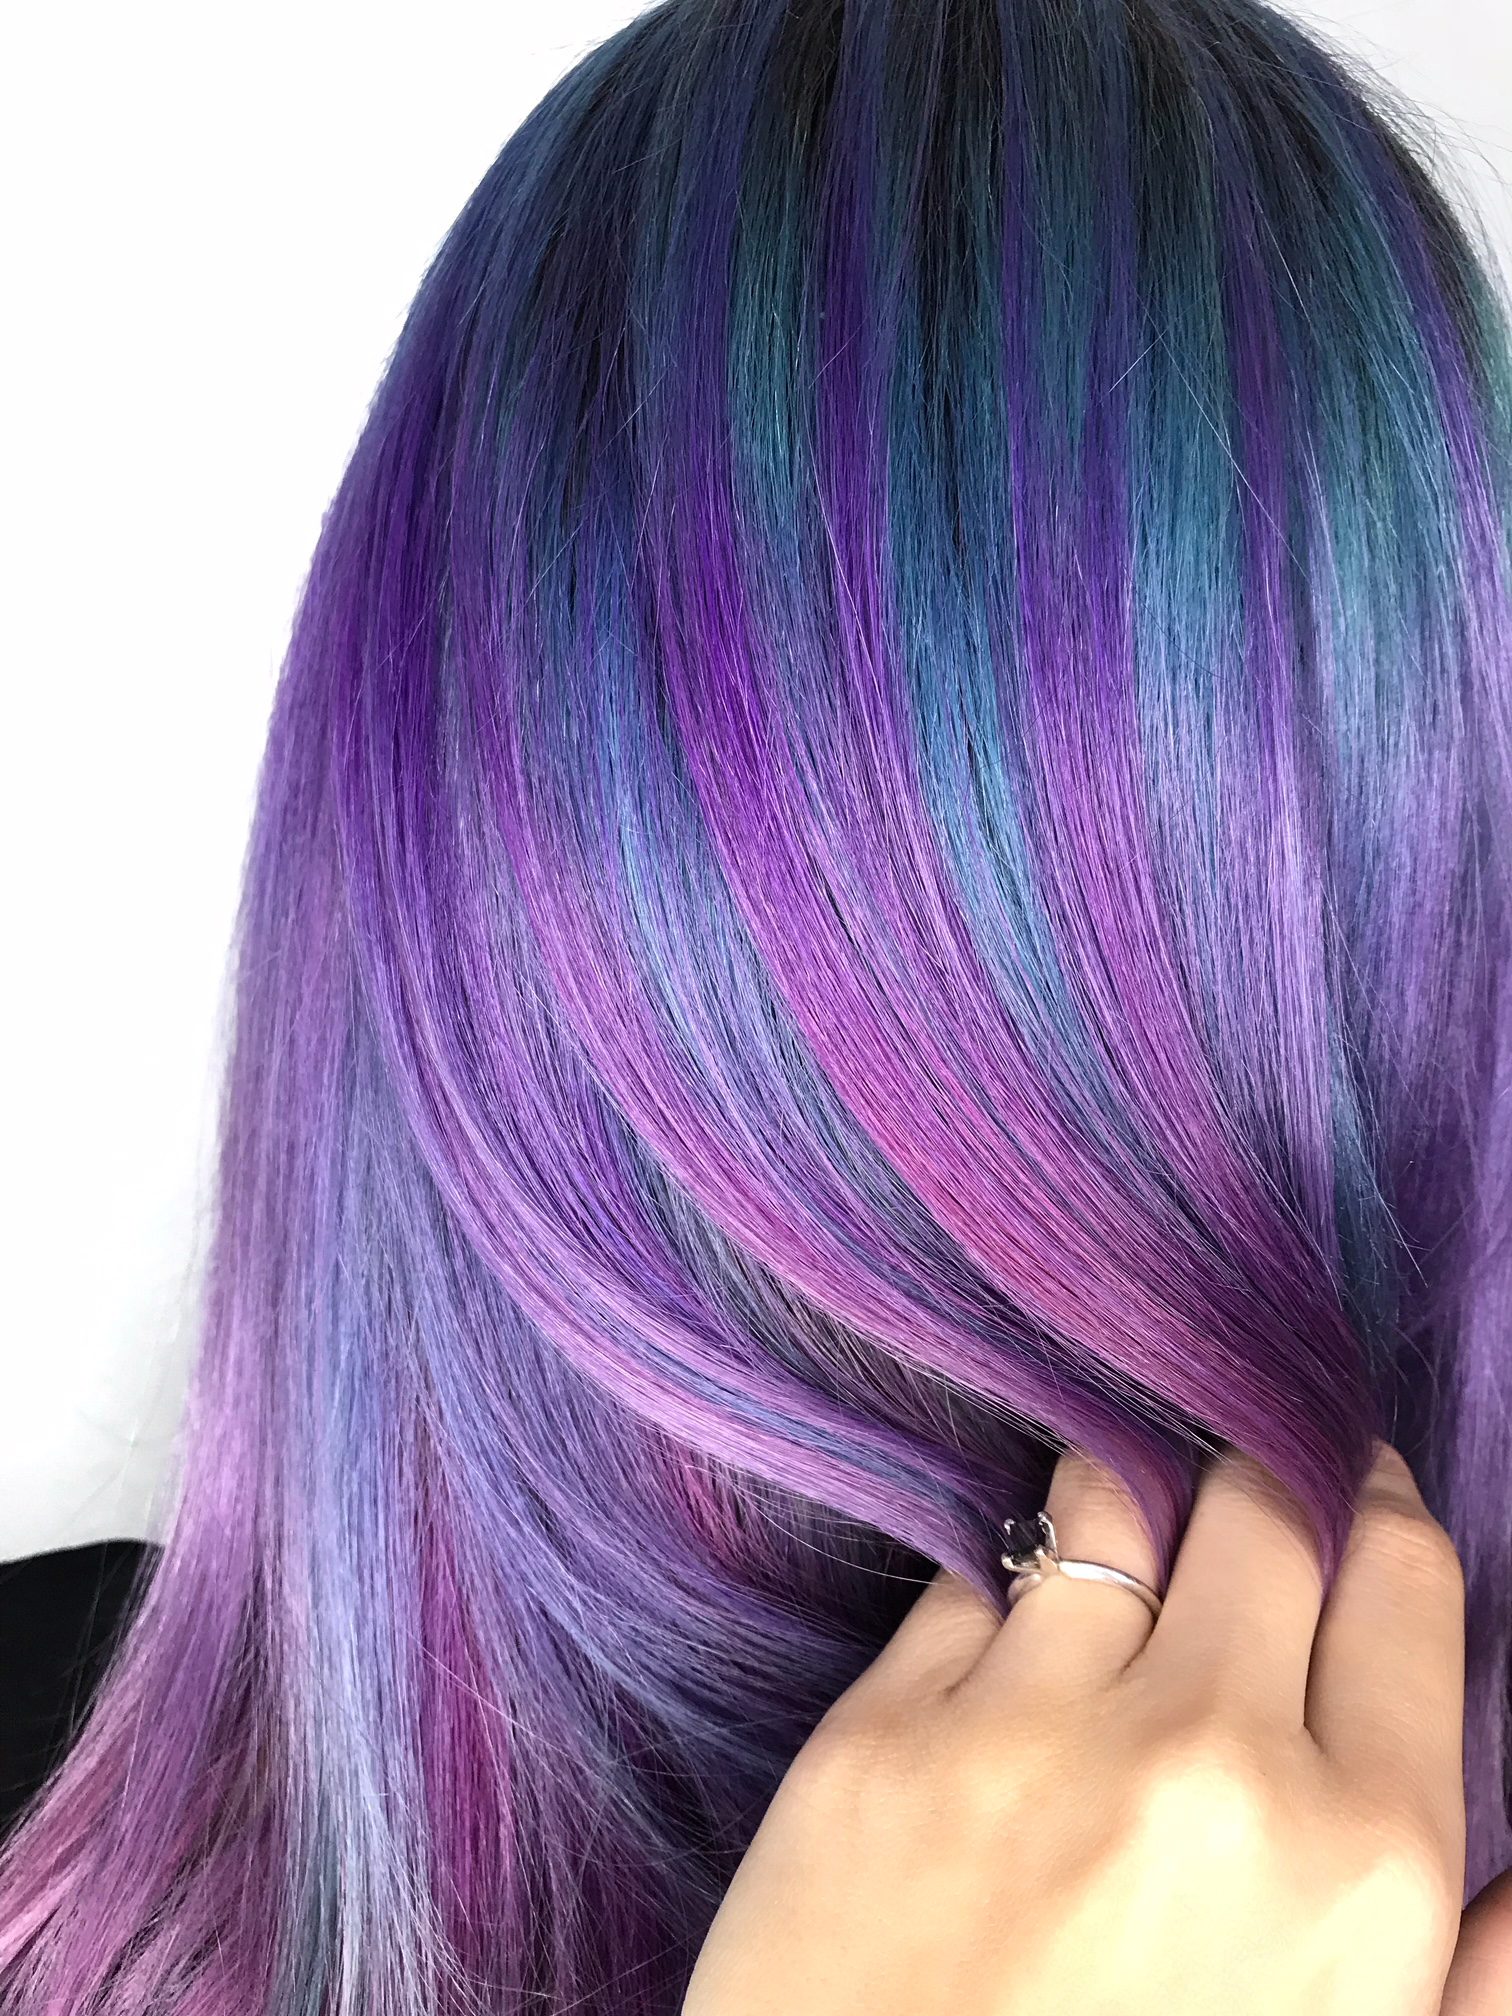 1-20MINUTE-WASH-PURPLE-BLUE-HOTPINK-EMERALD-BRENDABSTYLES-3